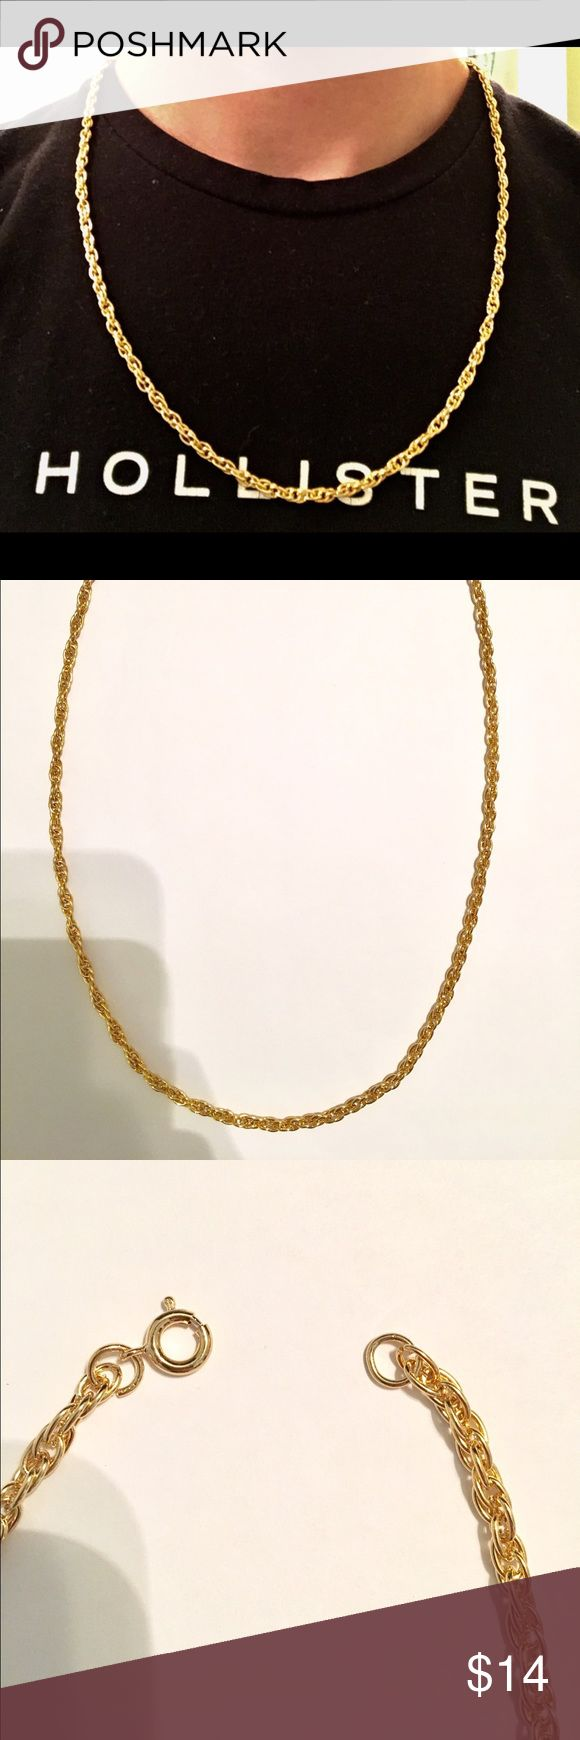 Gold Chain 14k gold 24in 5mm Rope Chain High quality 14k gold filled rope chain  Chain is: • 5mm  • 24in • gold filled with real gold. Gold filled is more valuable then plating and does not fade away or tarnish like plating. • High quality and durable. Able to carry a pendent piece if you so desire. Has good weight to it. Chain will be:  • Packaged well and handled with care. • Shipped within the same or 1 day • Delivered in 2-3 business days of being shipped. Accessories Jewelry